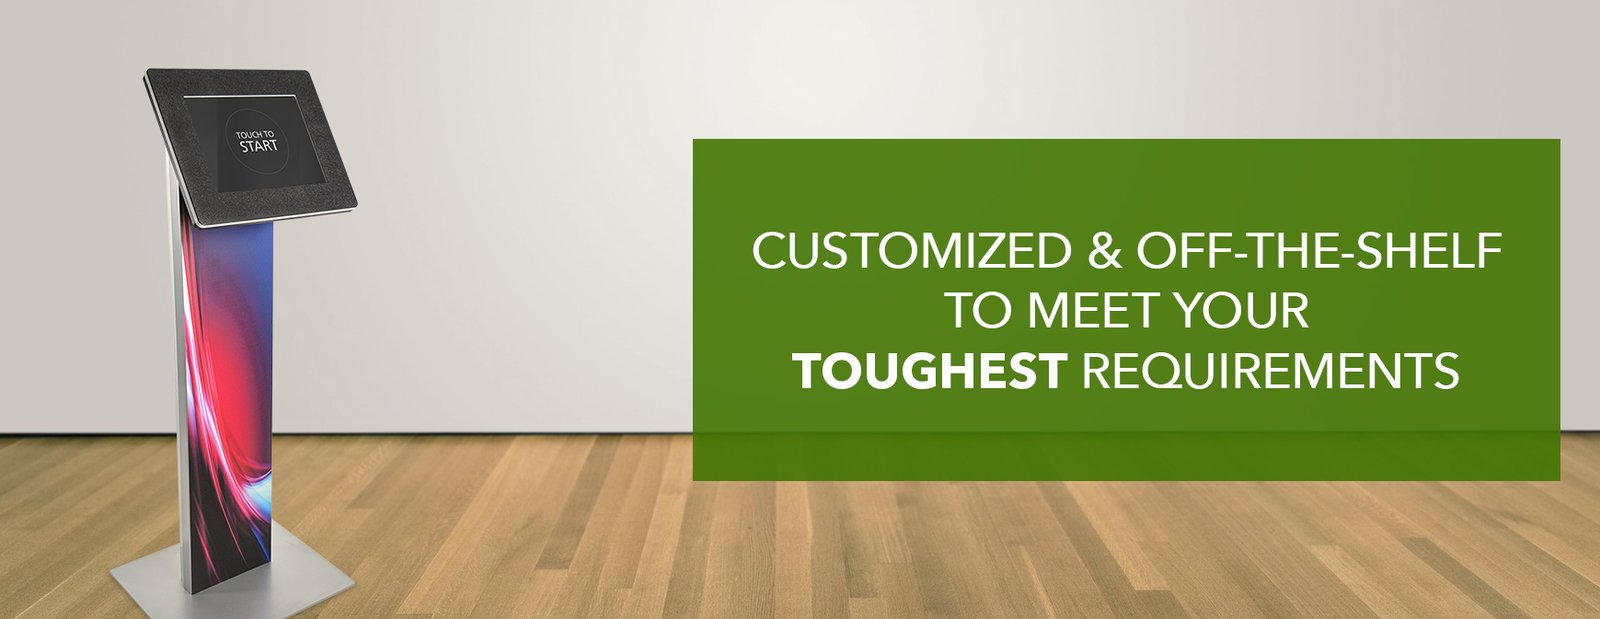 Our kiosks are designed to meet your toughest requirements.